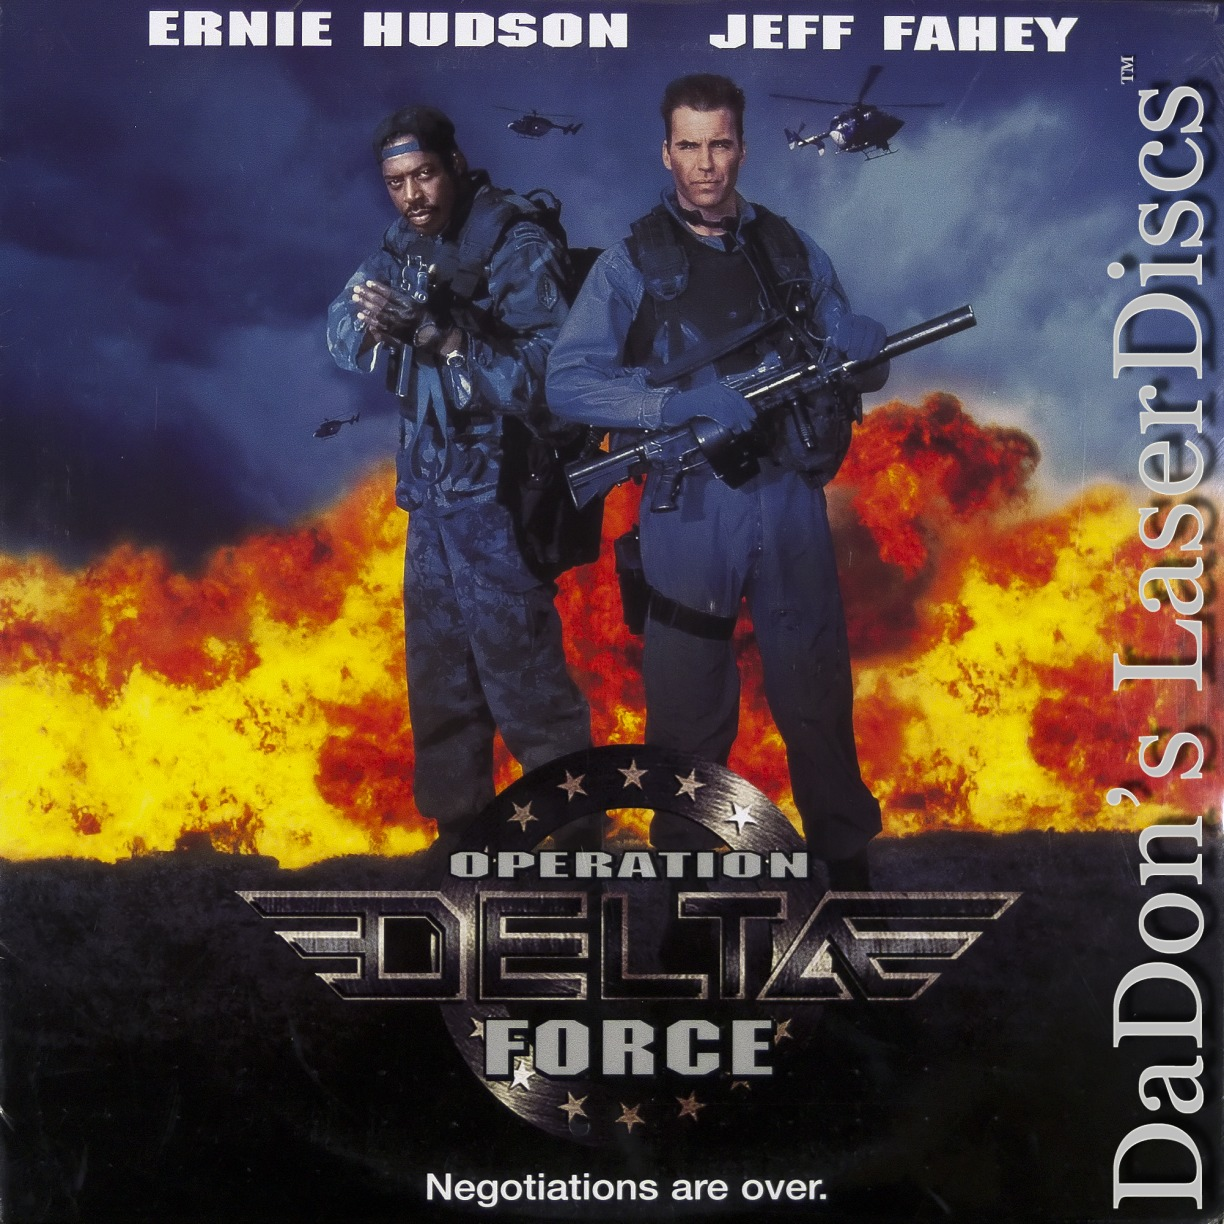 Operation Delta Force Movie HD free download 720p